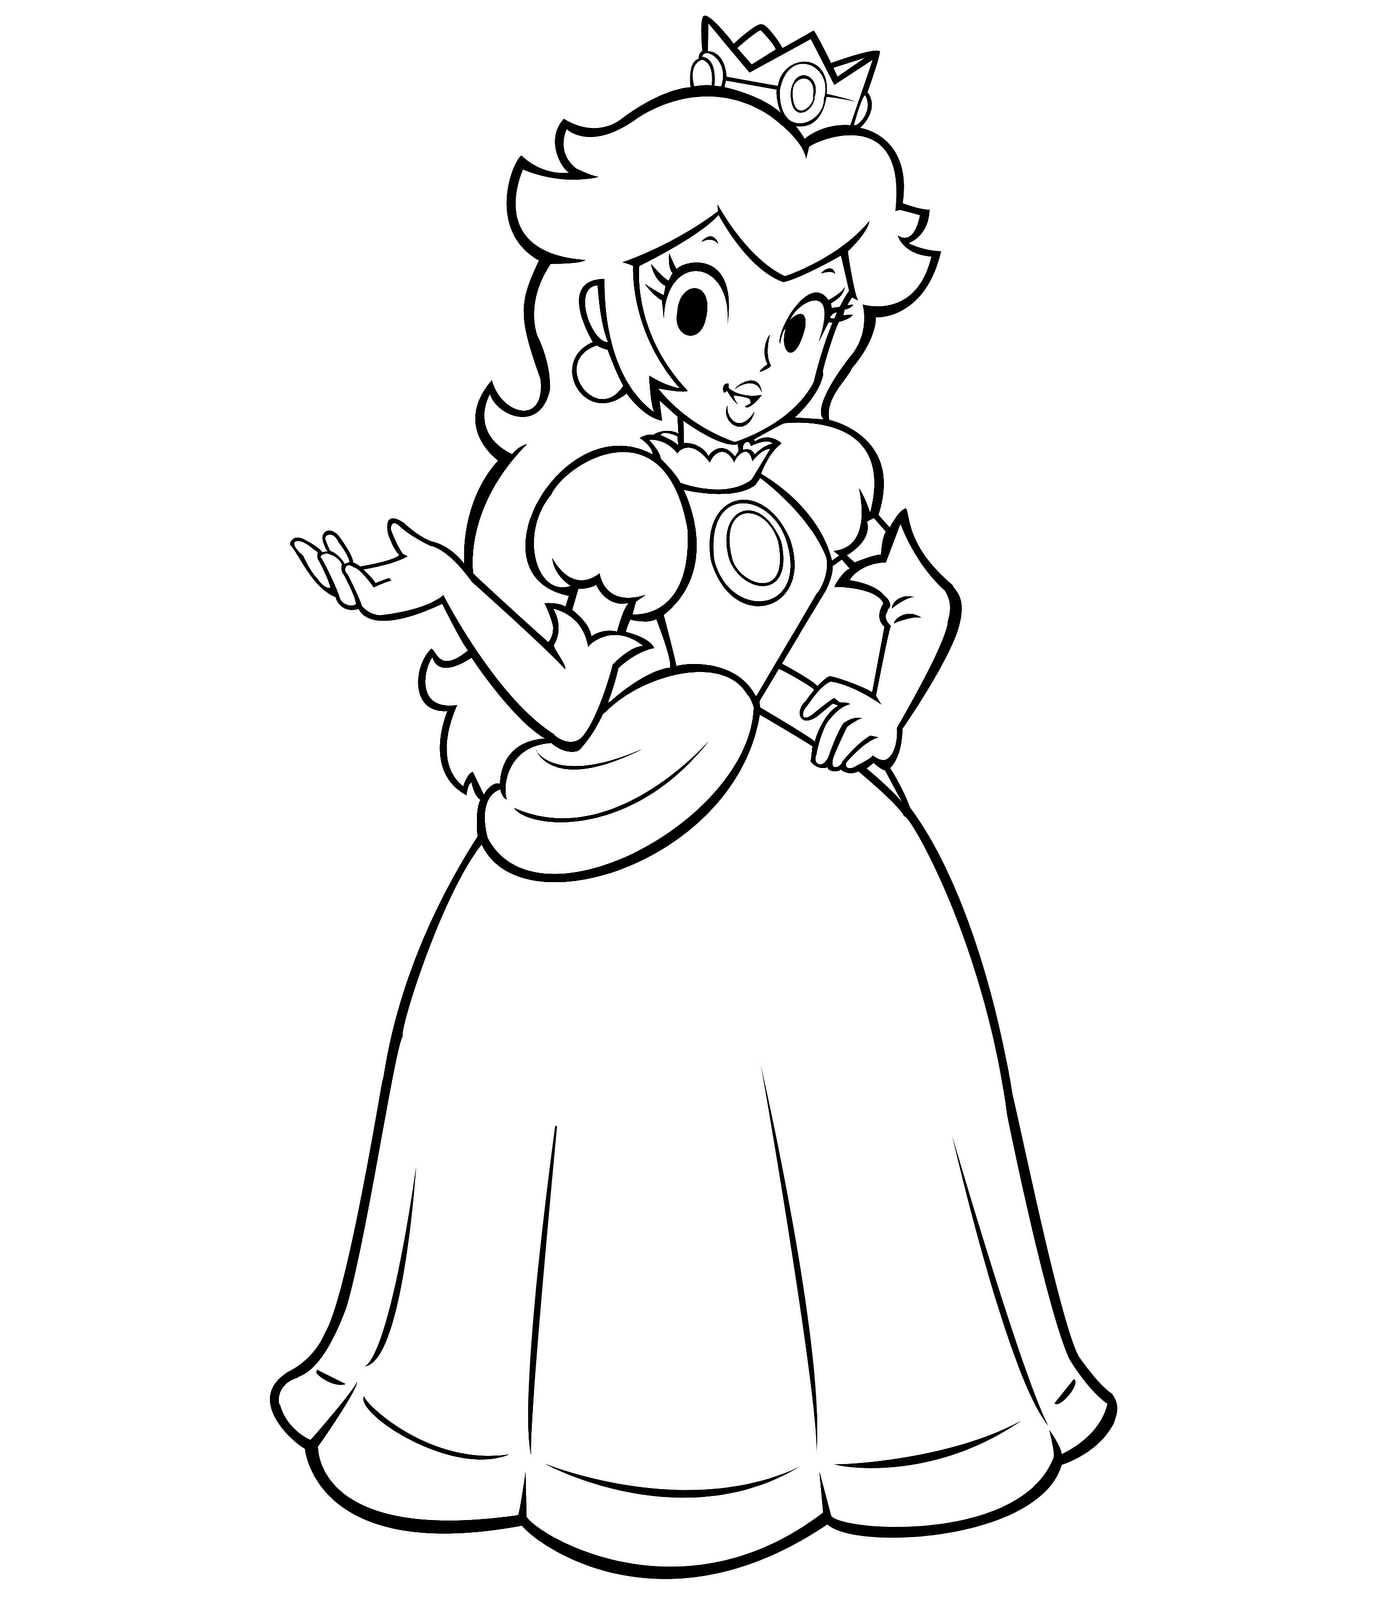 Dessin colorier princesse peach imprimer - Comment dessiner peach ...